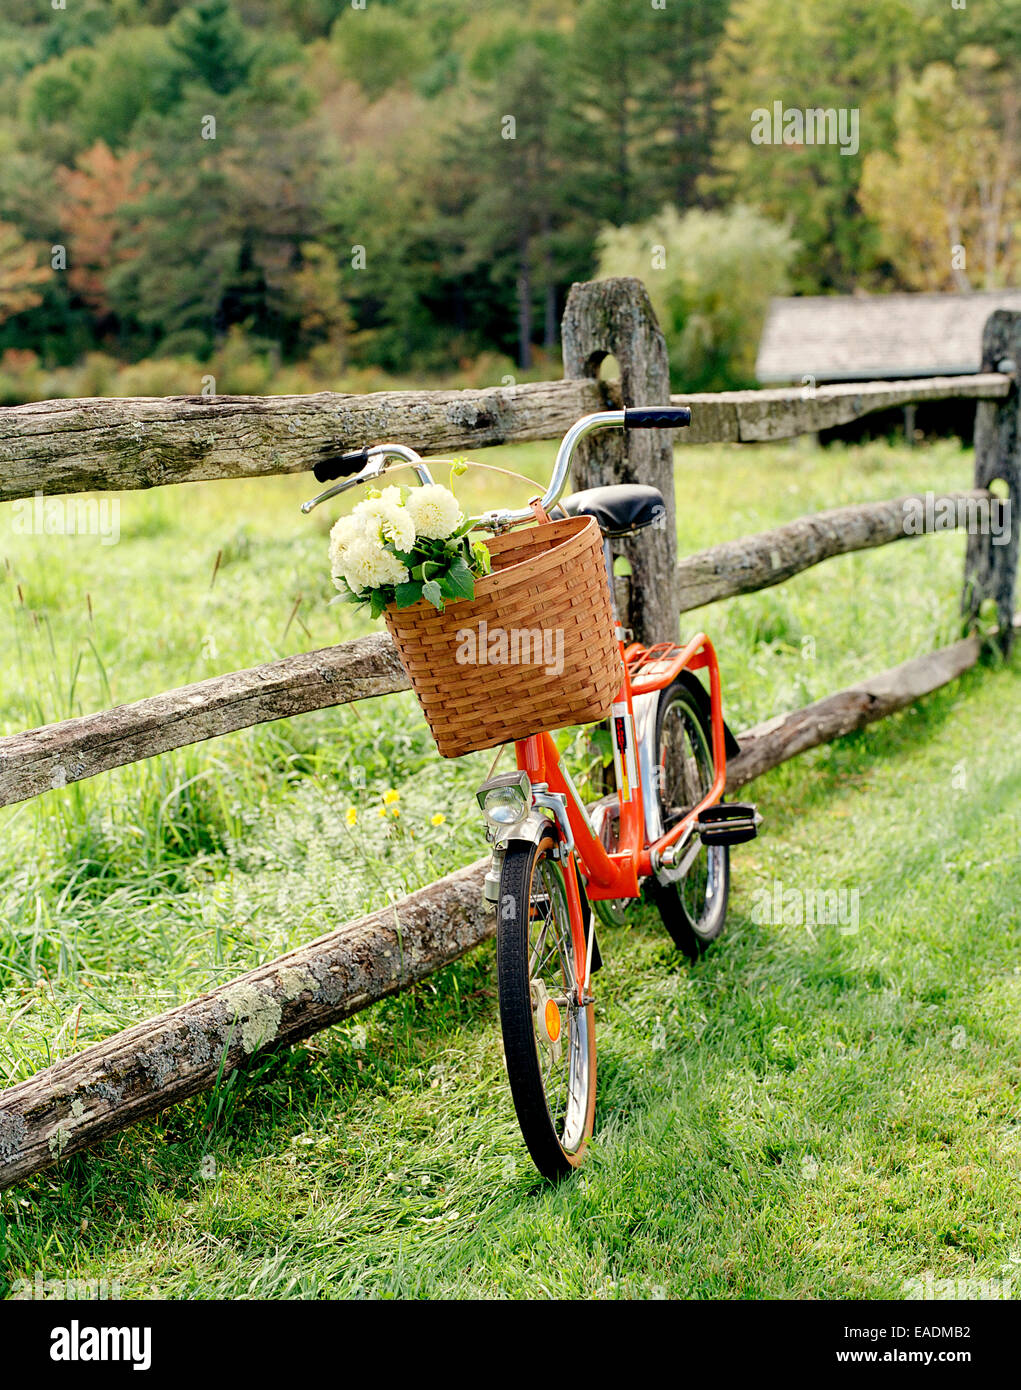 Orange Bicycle with Flowers In Basket, Hudson Valley, NY - Stock Image